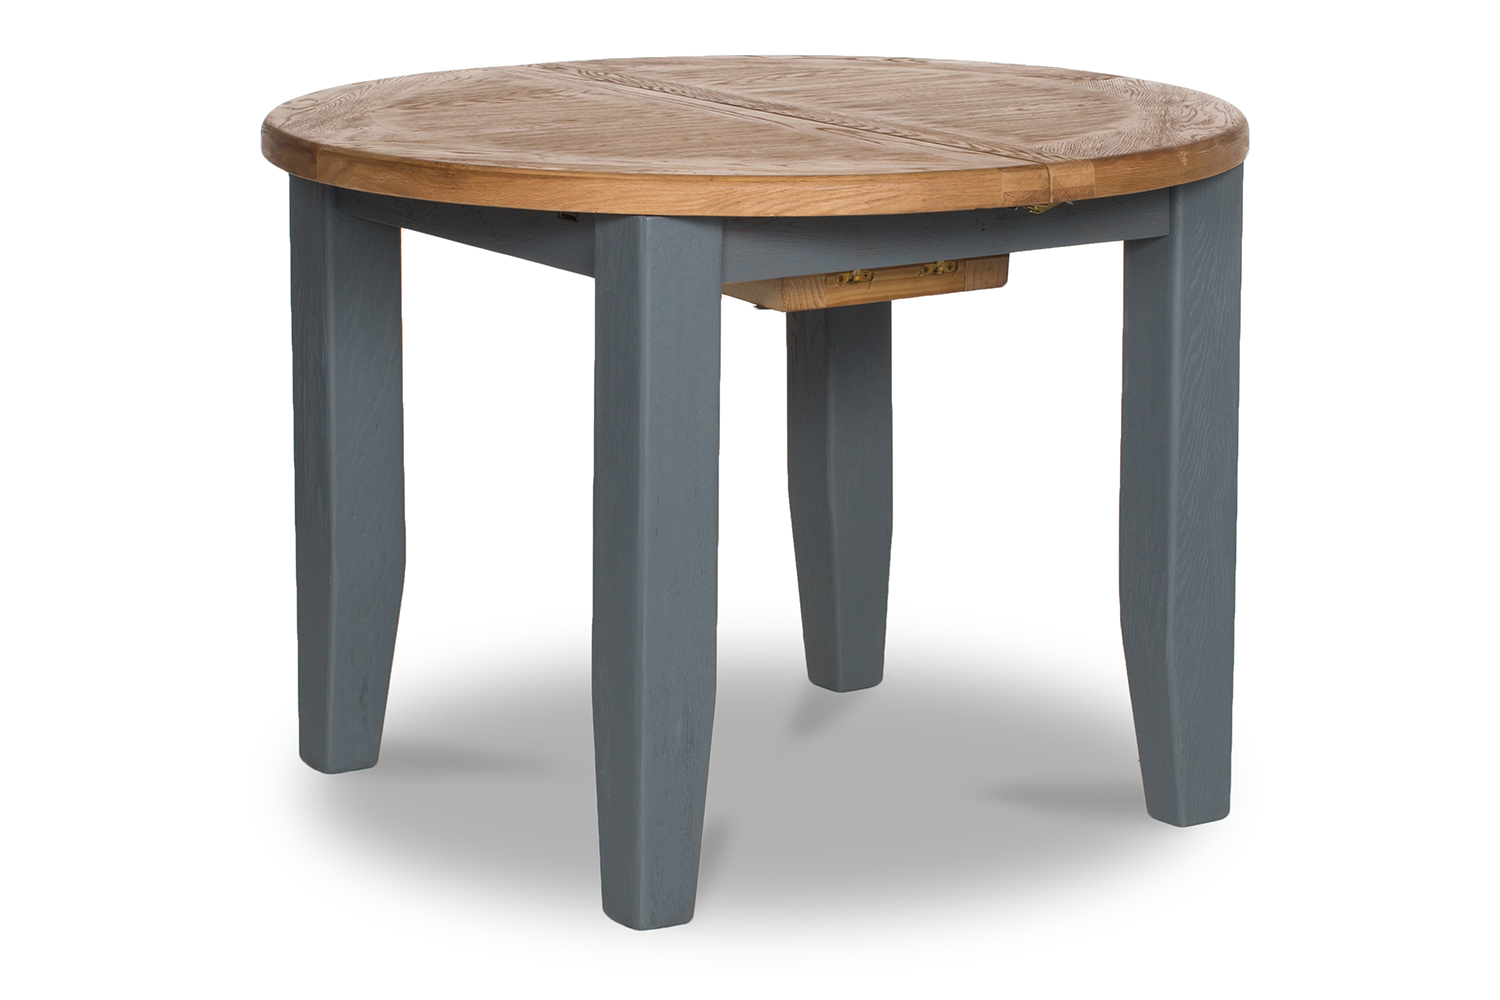 Tisbury Extended Round Dining Table  110cm | Painted grey